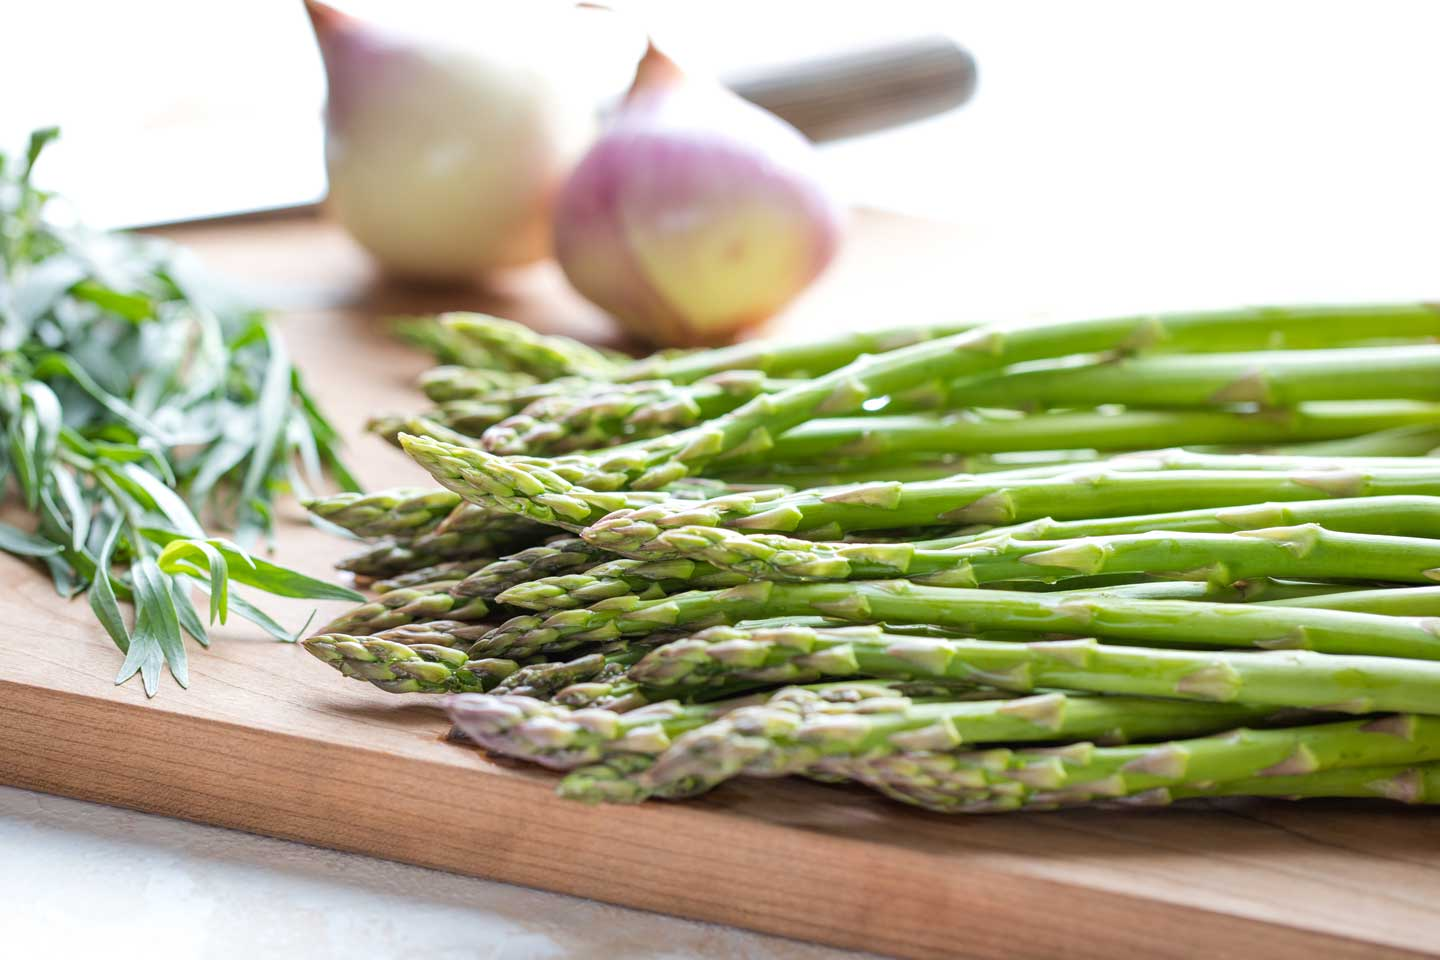 Closeup side view of fresh asparagus spears with herbs, a knife and other vegetables in the background.